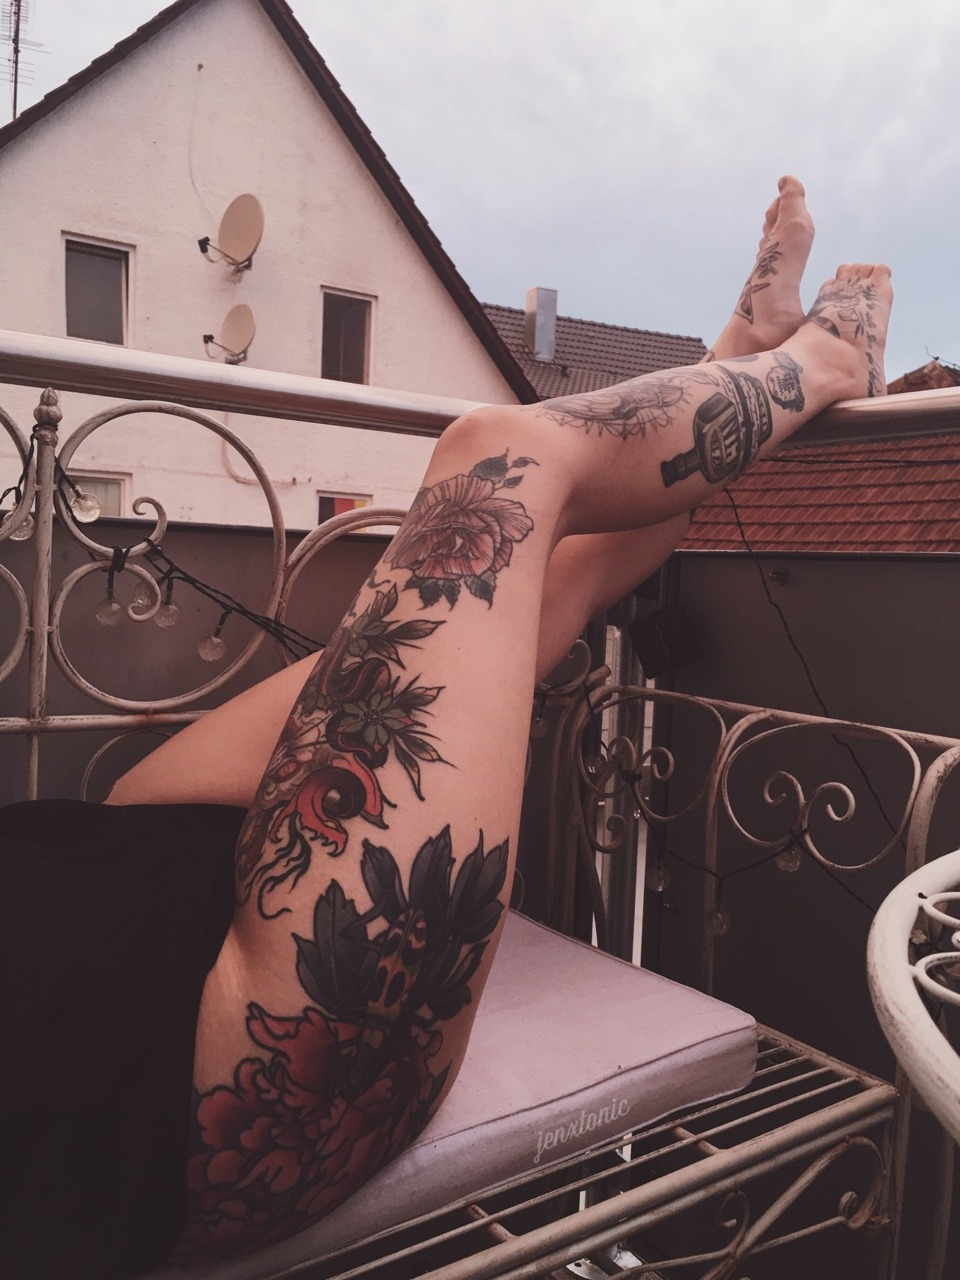 Thigh Tattoo Tumblr : thigh, tattoo, tumblr, Thigh, Tattoos